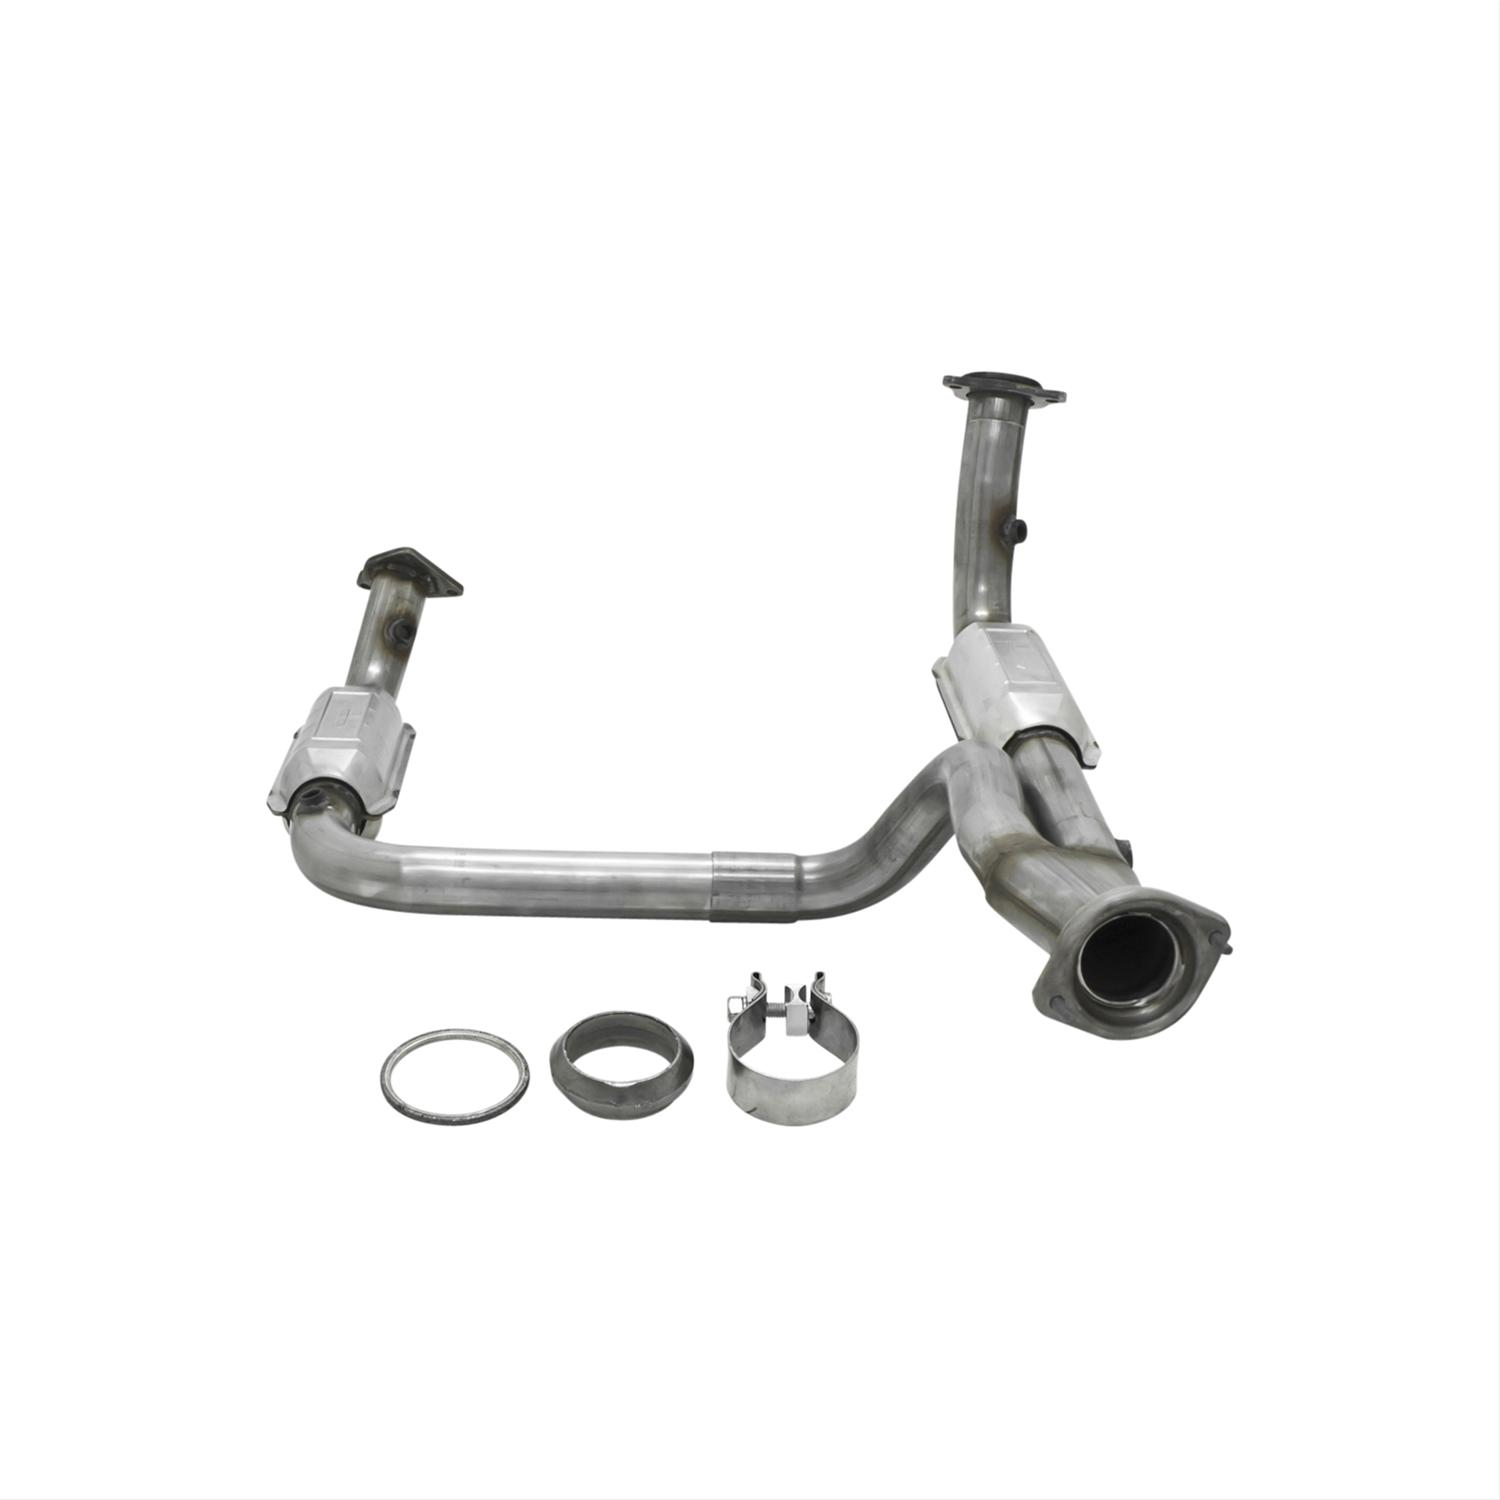 Flowmaster 2010023 49 State Direct Fit Catalytic Converter